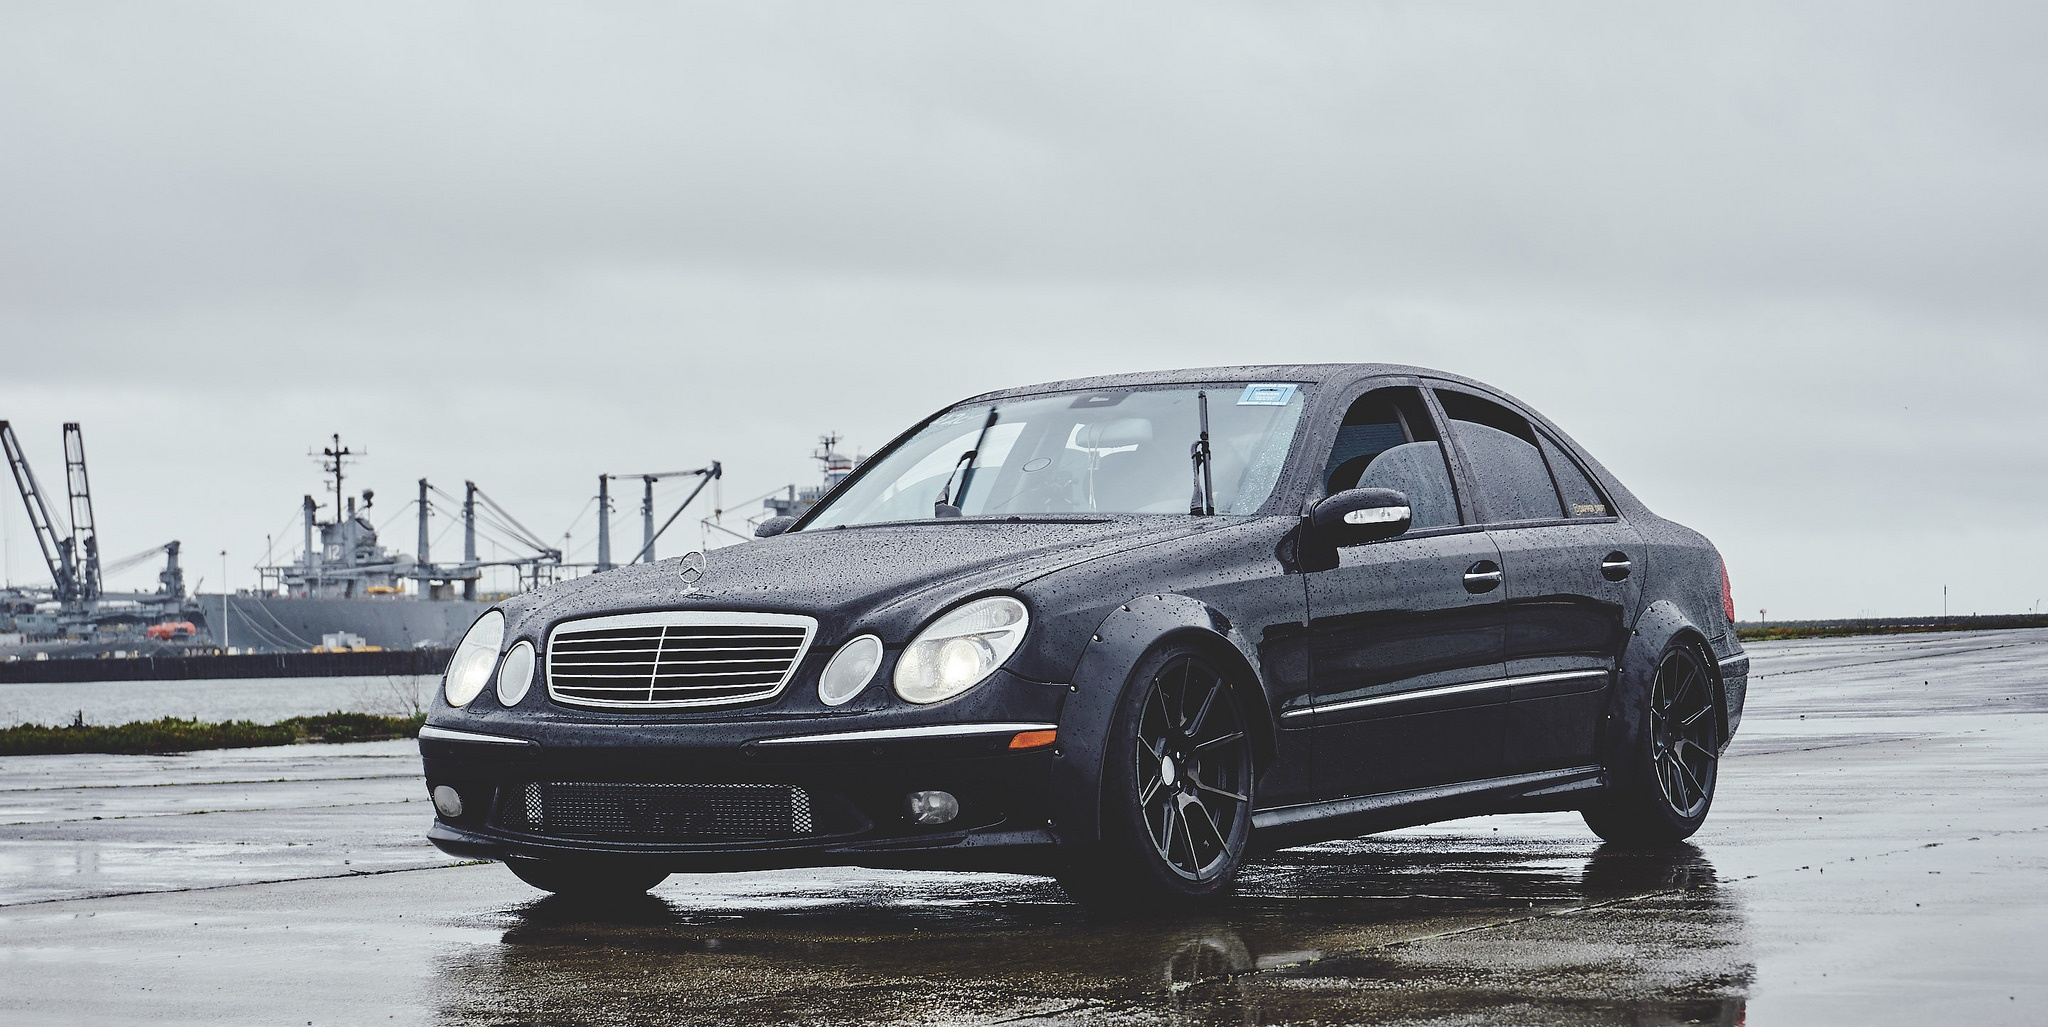 Weekend Wallpaper: 2003 W211 Mercedes-Benz E55 AMG Edition